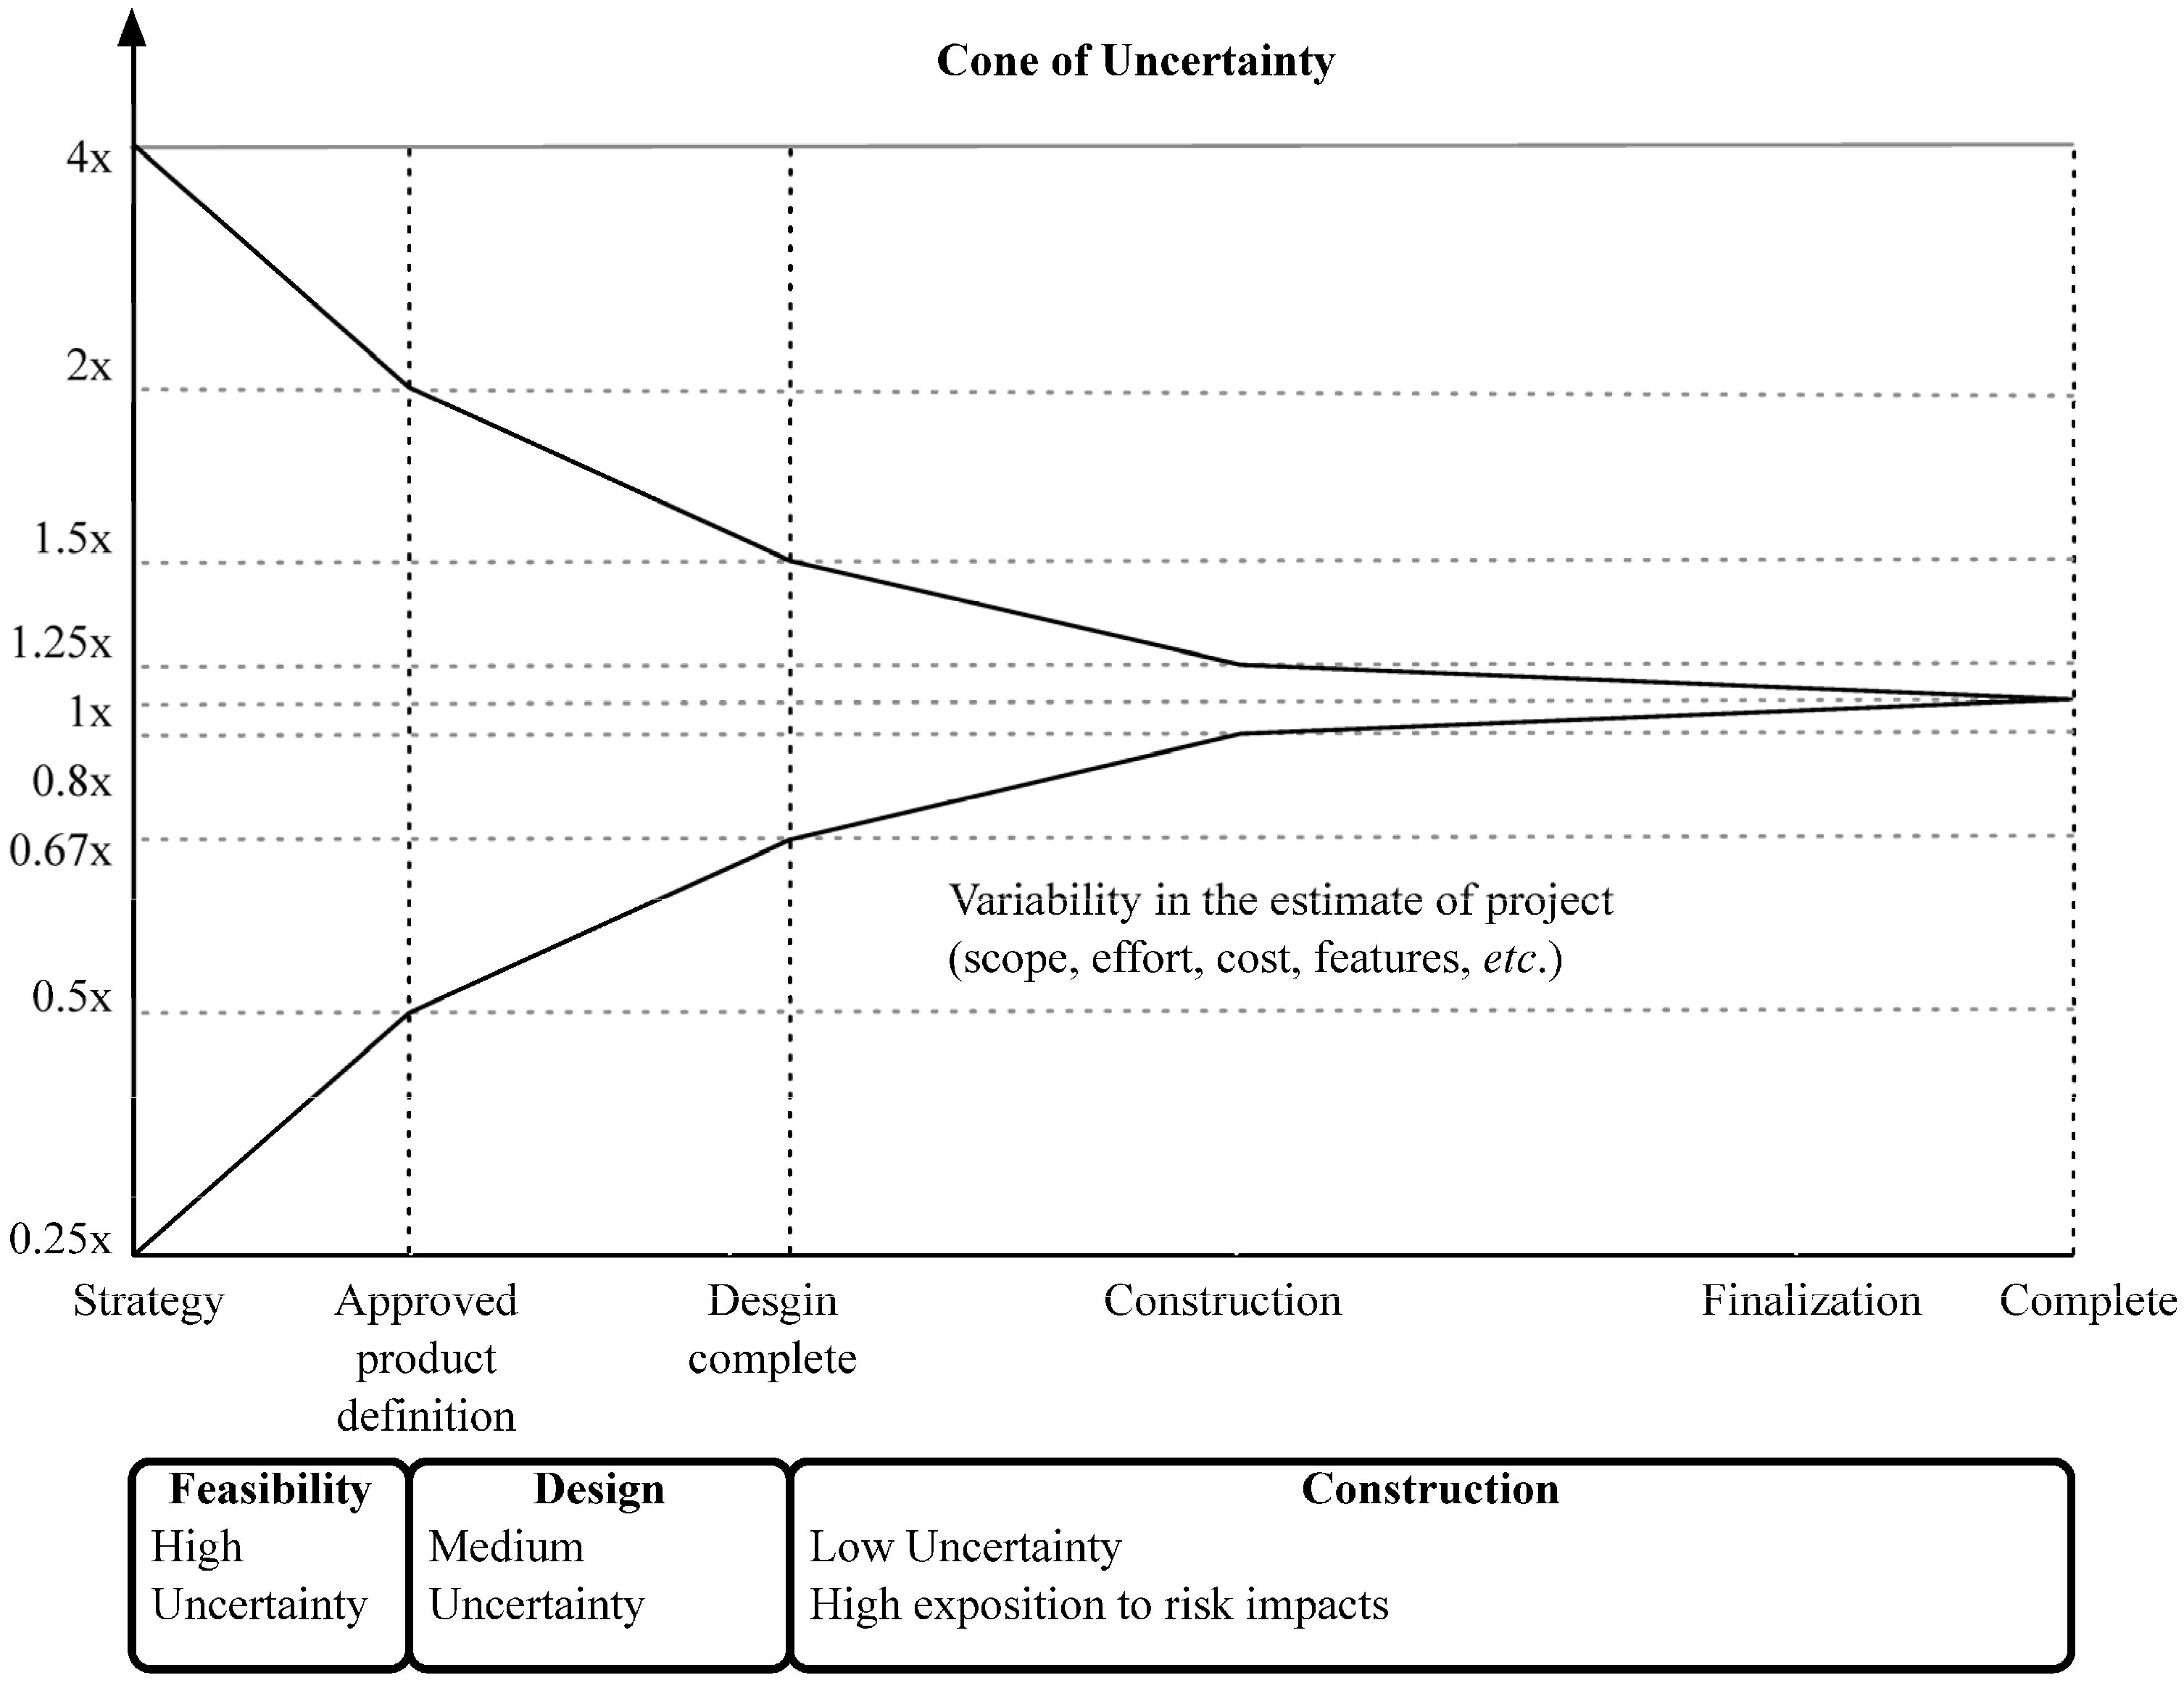 Lean construction wikipedia - Figure 2 The Cone Of Uncertainty For Sequential Project Development Adapted From Mcconnell 92